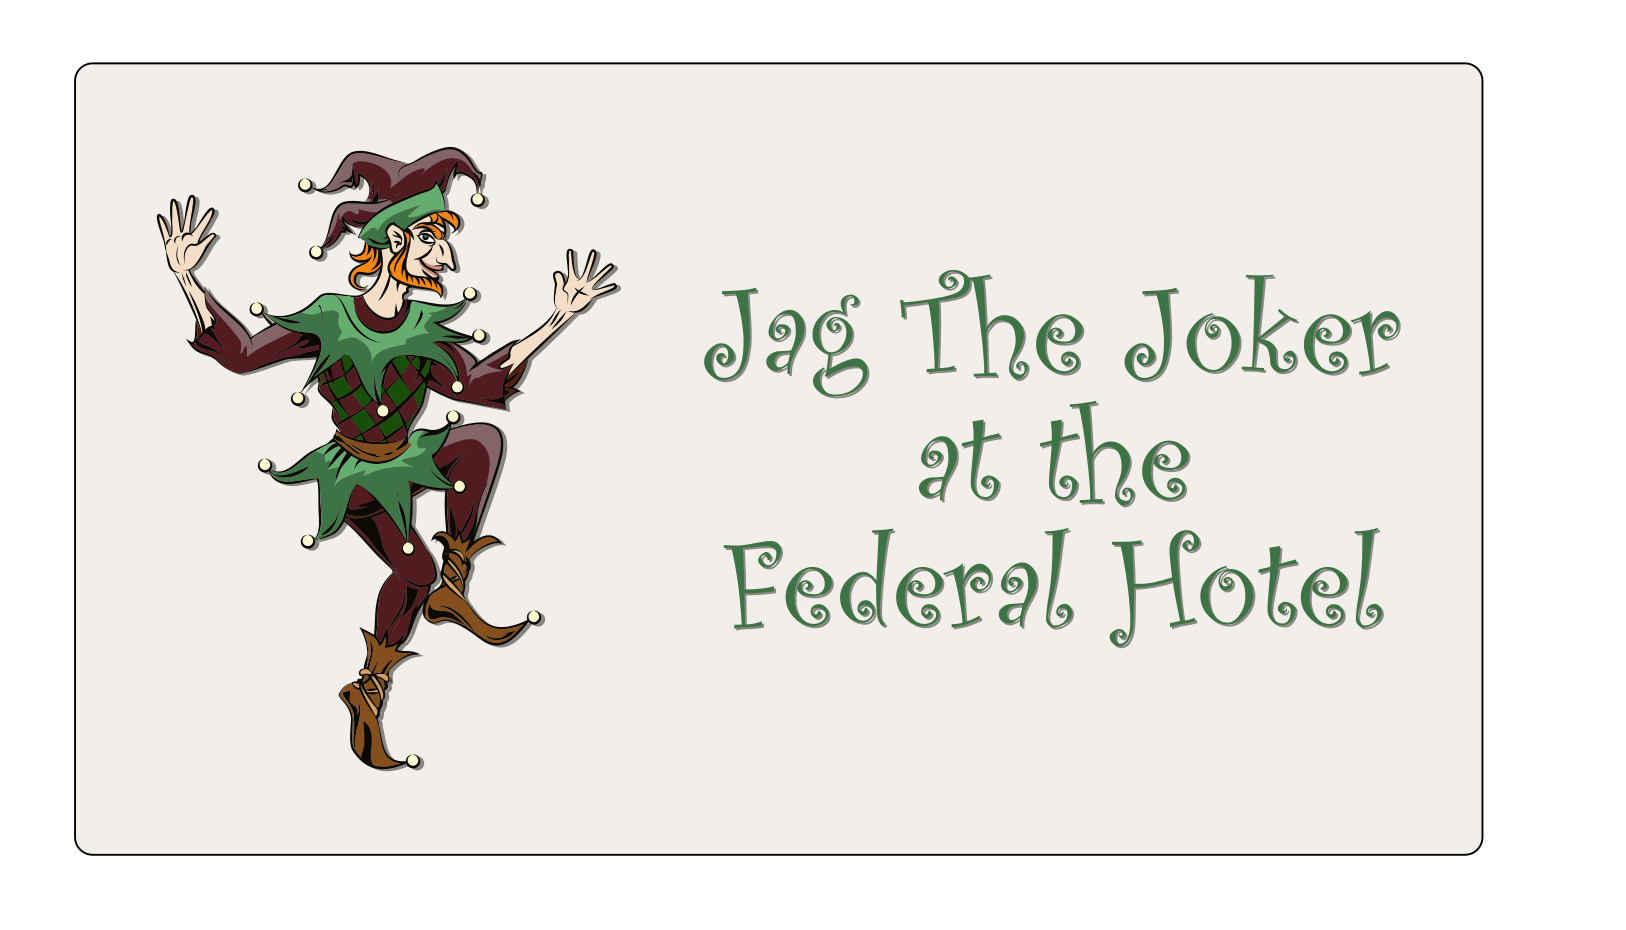 event Jag the Joker at the federal hotel